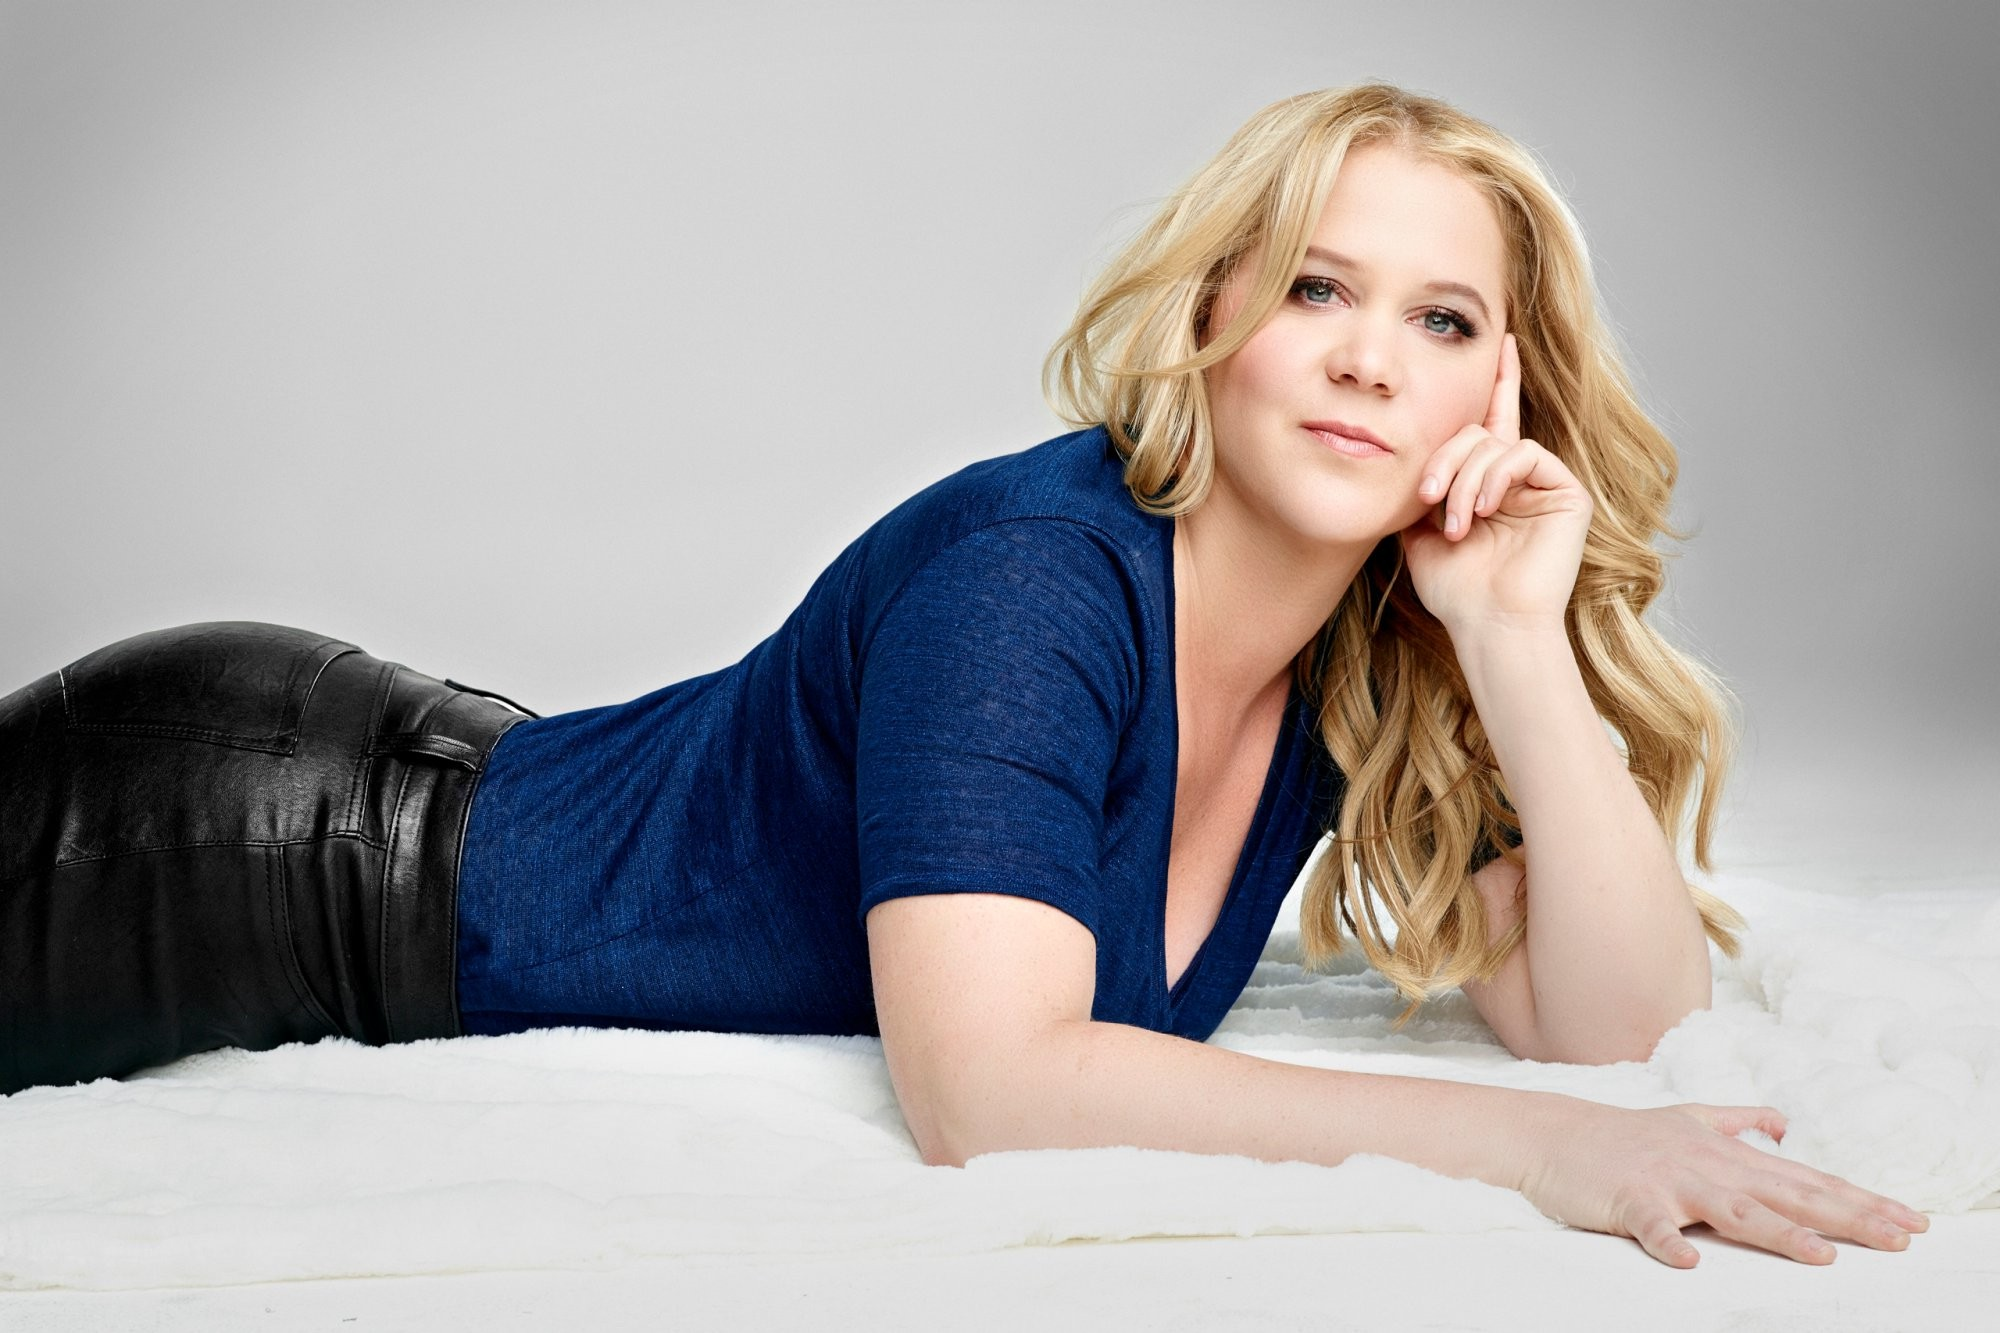 amy schumer - photo #10